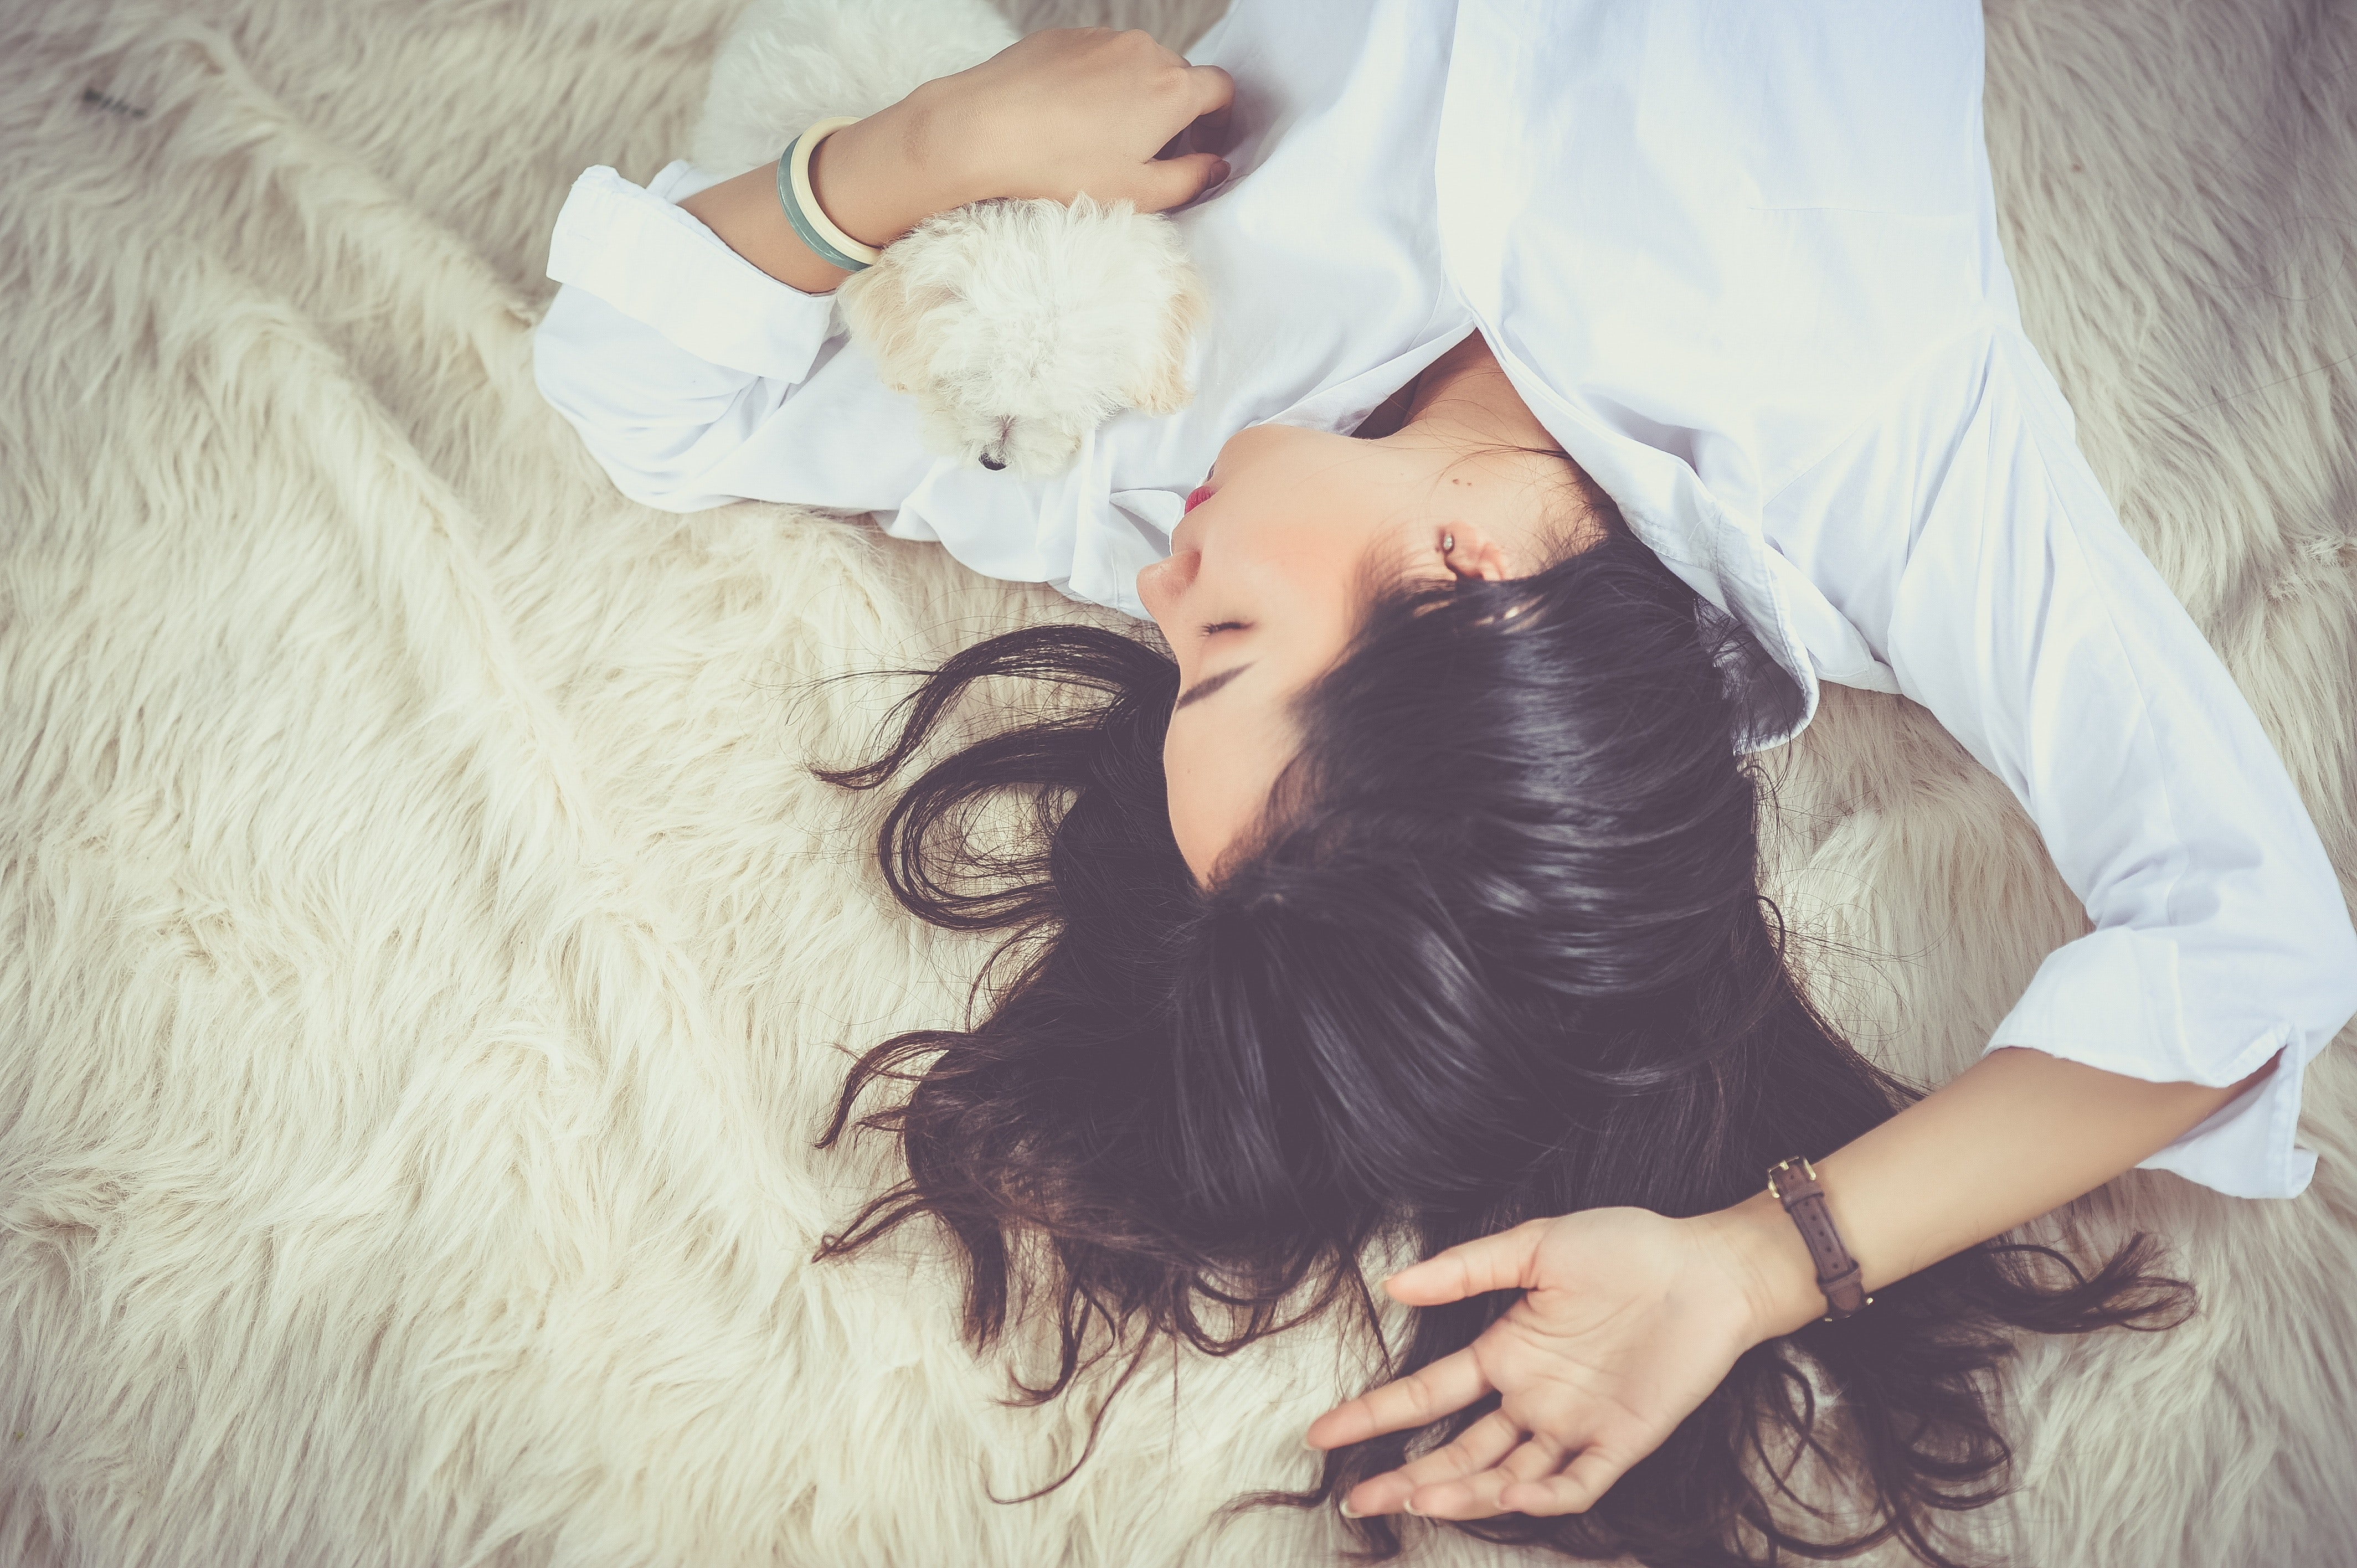 Person Lying On Bed Covering White Blanket 183 Free Stock Photo